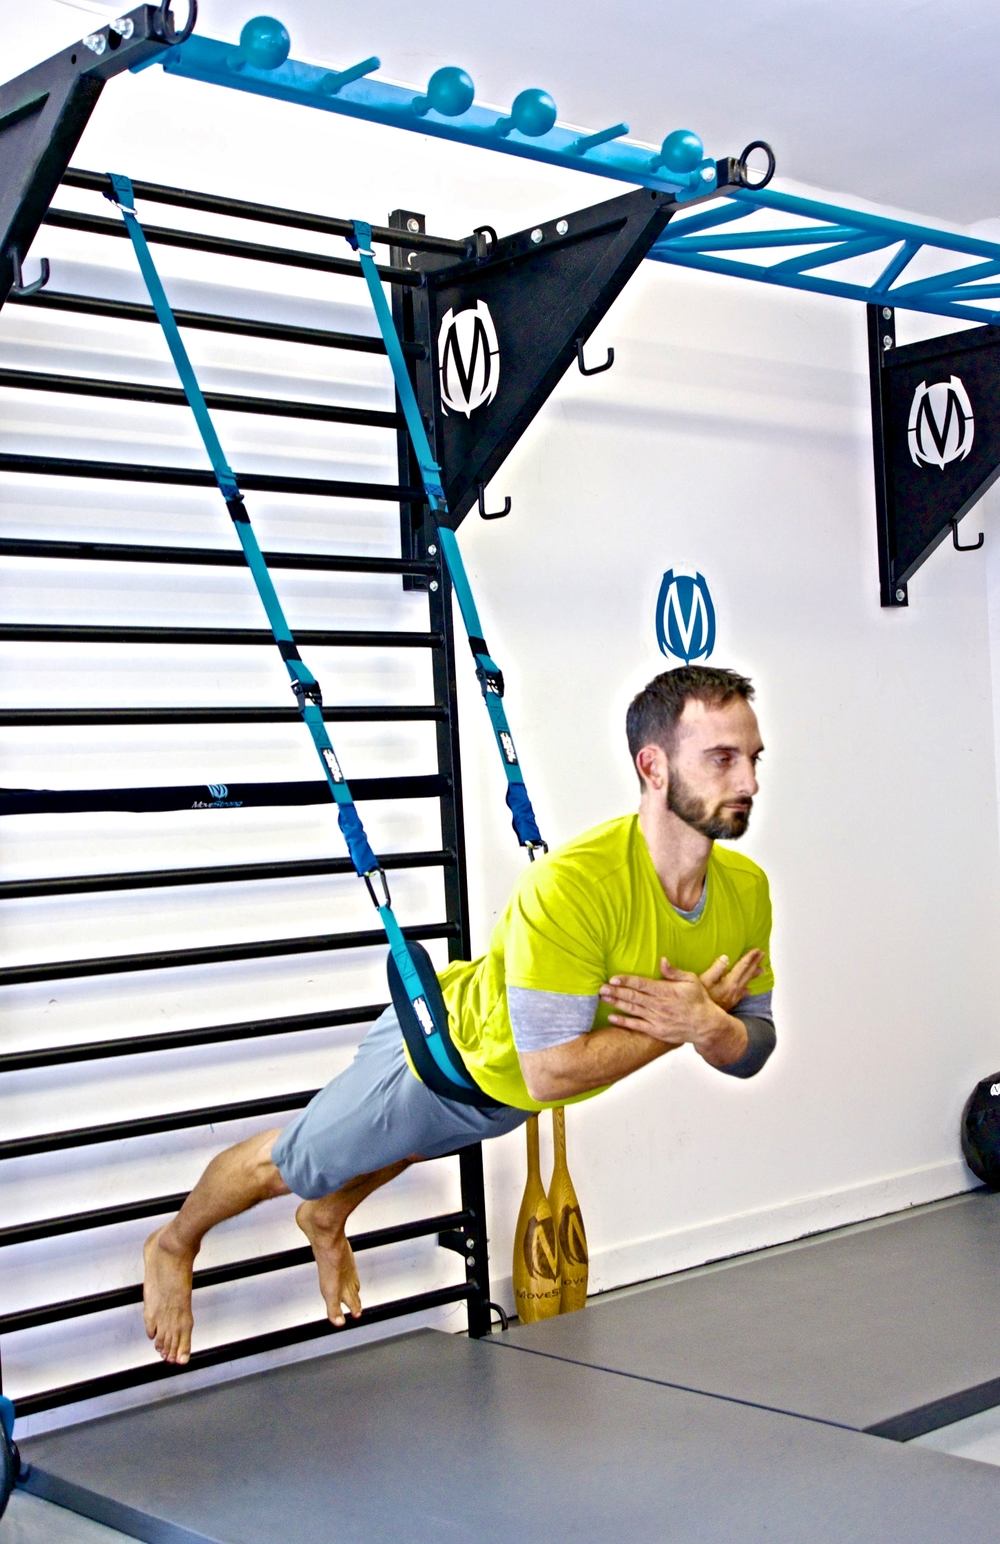 Elevate Trainer used with MoveStrong Stall Bars